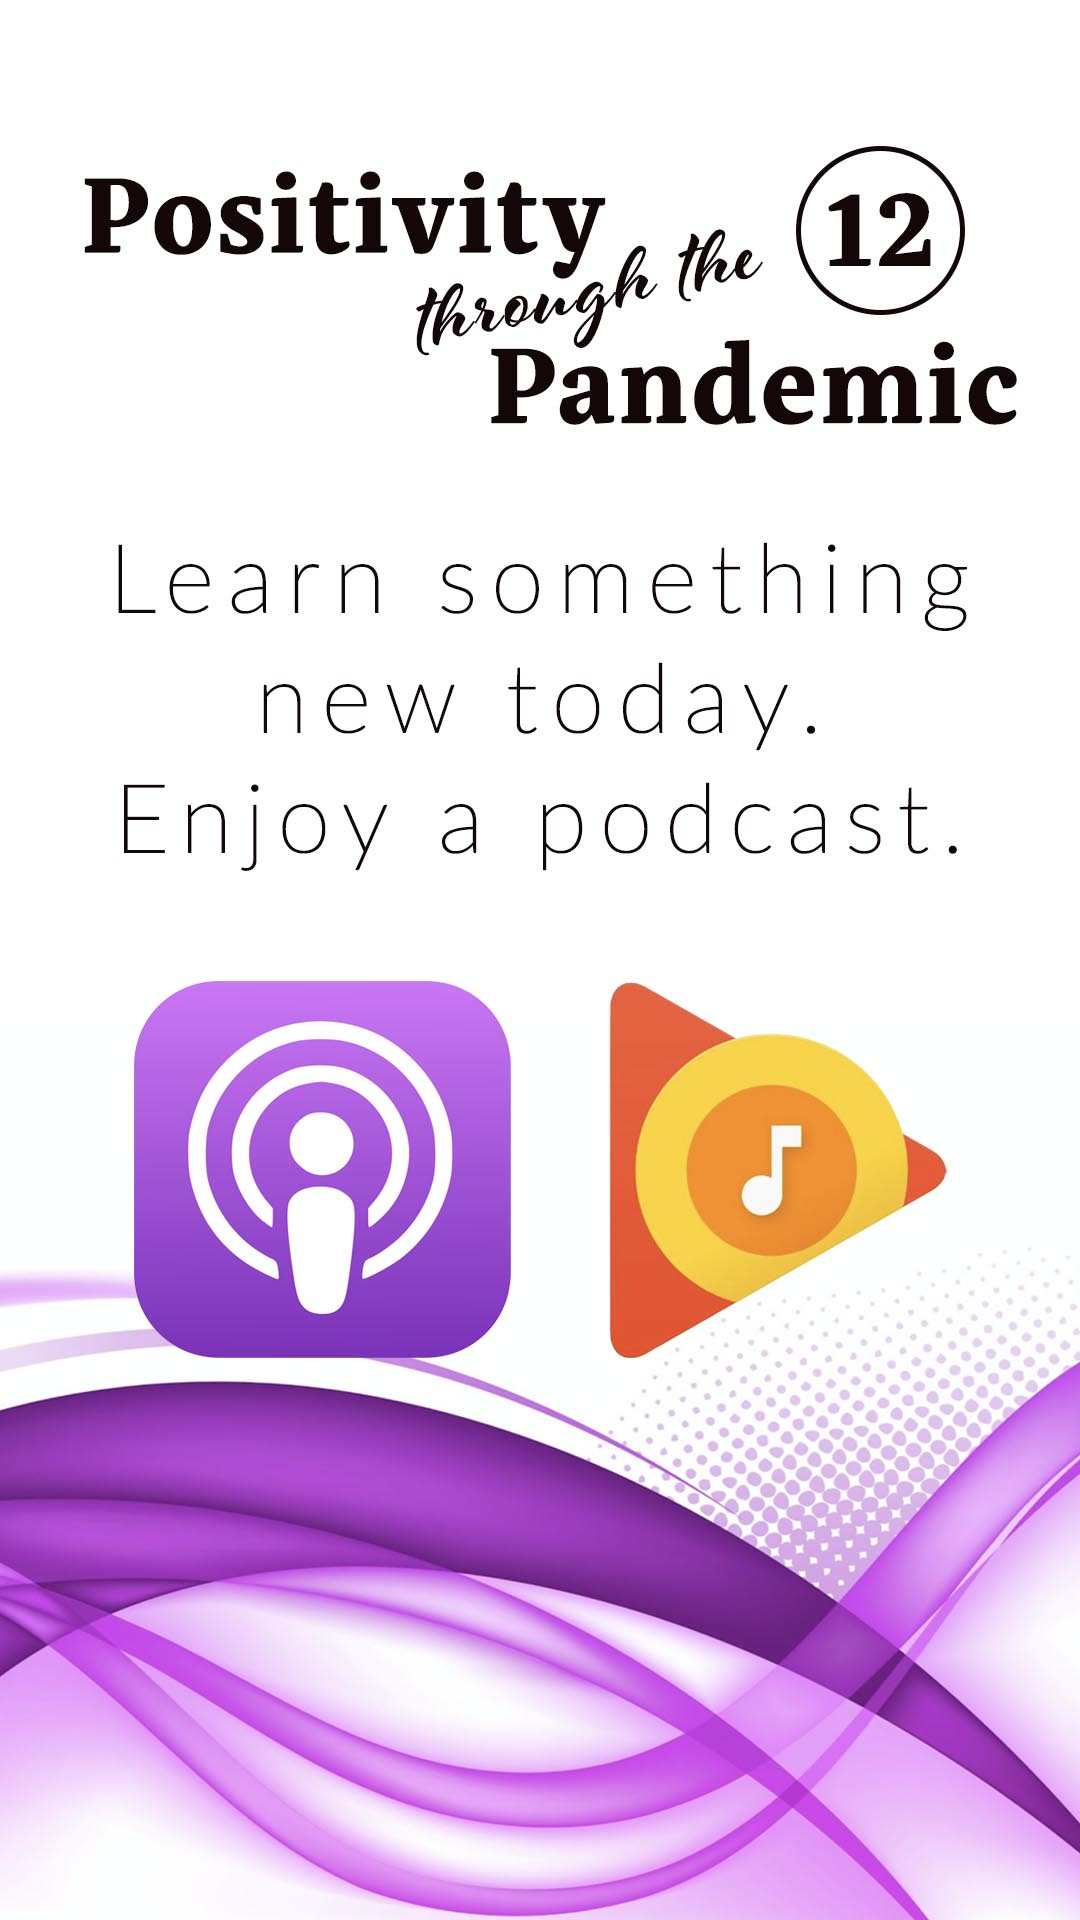 Positivity through the Pandemic #12: Learn something new today enjoy a podcast